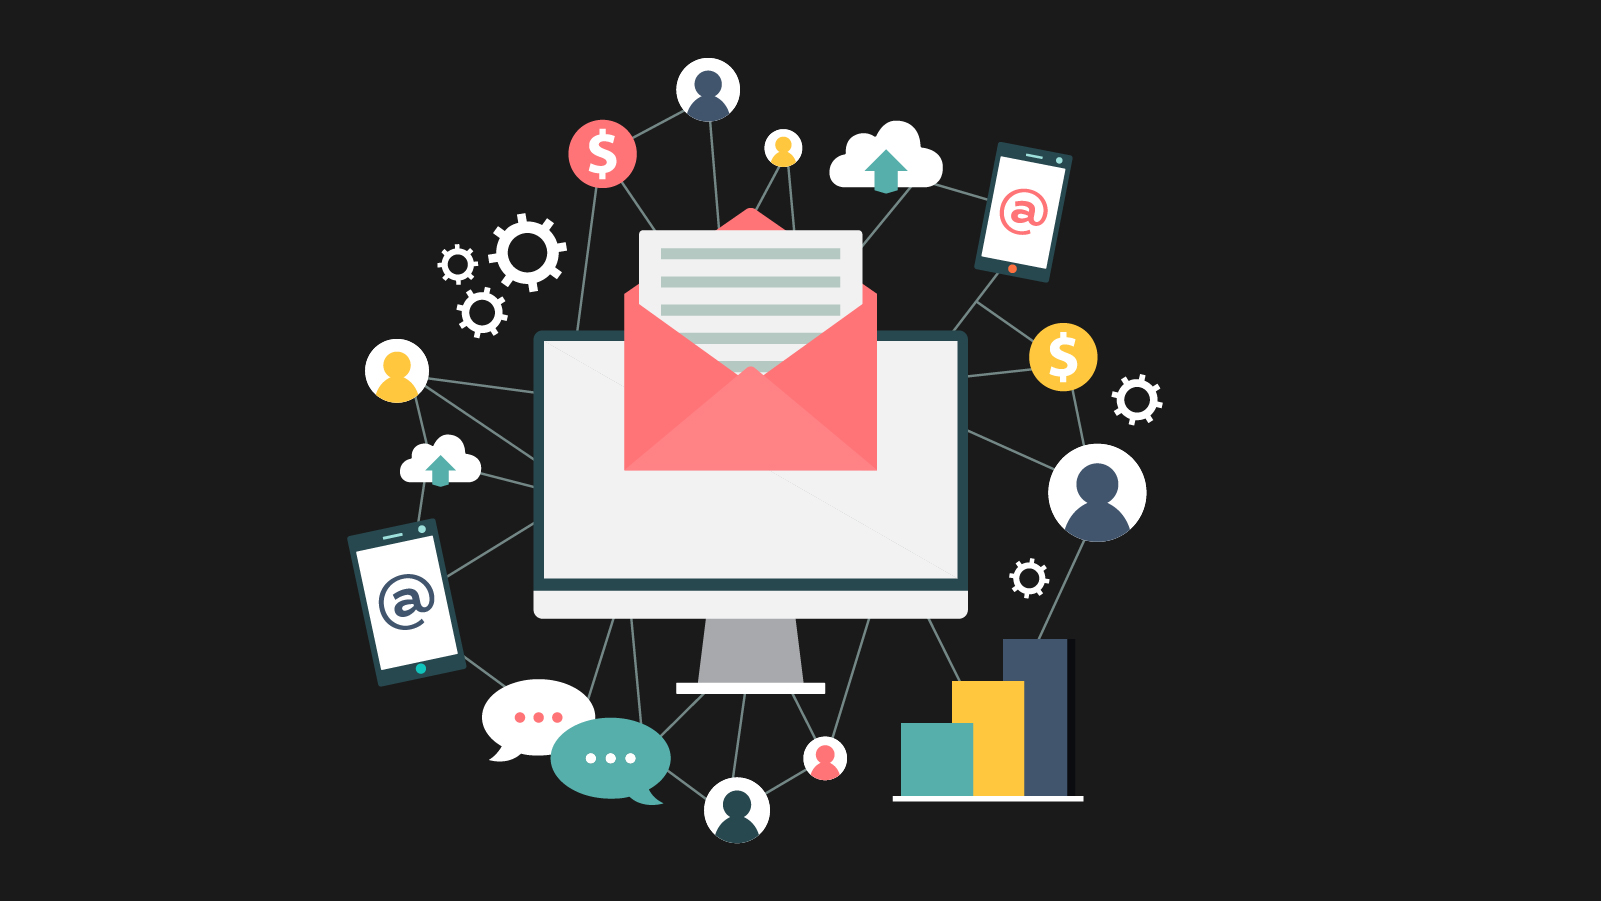 Email marketing why should it be the pillar of your digital strategy visual - Digital Plant Sdn Bhd